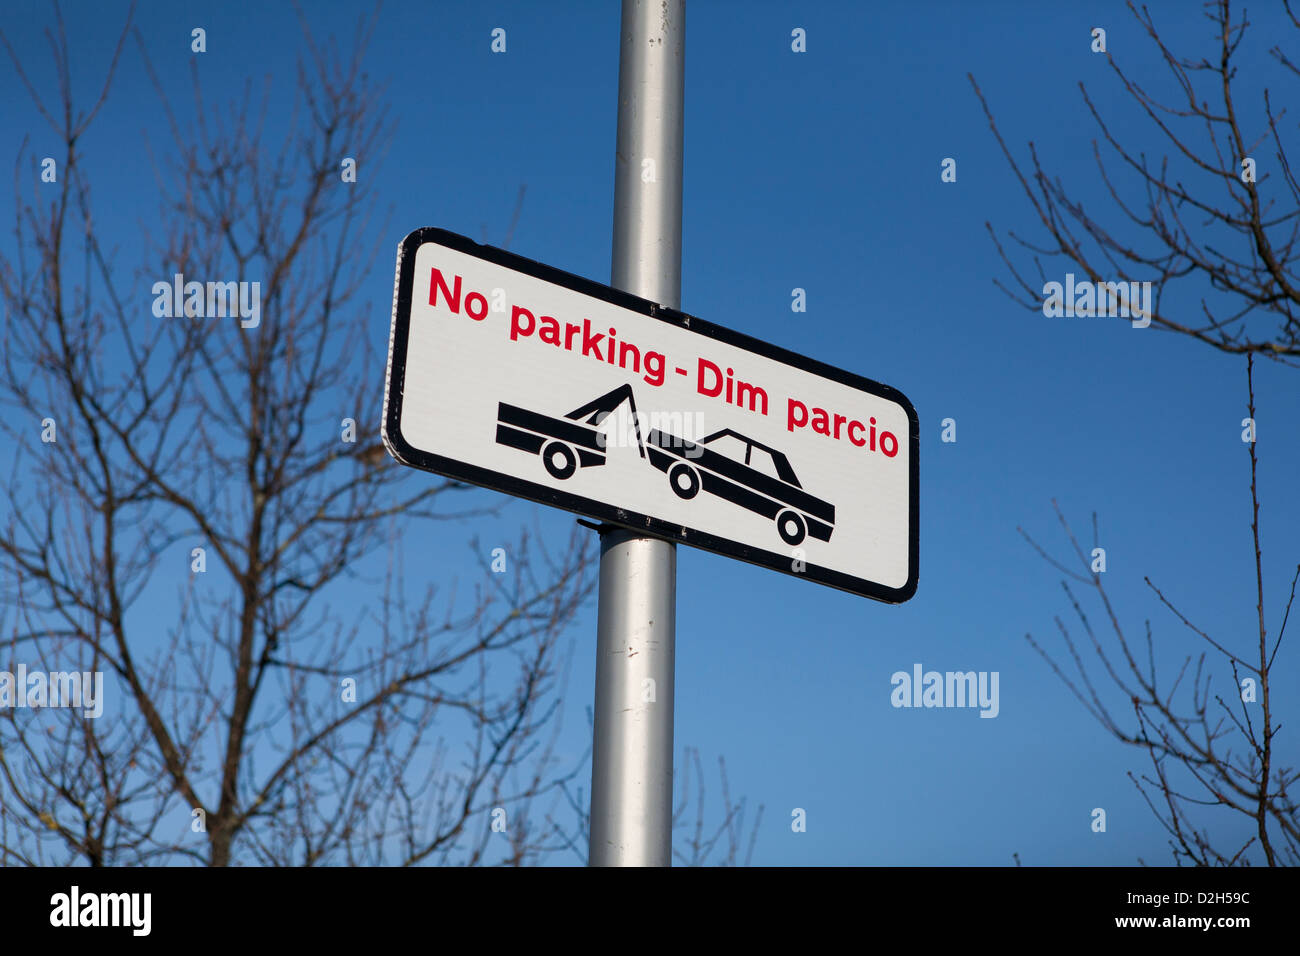 No Parking sign with welsh translation. - Stock Image